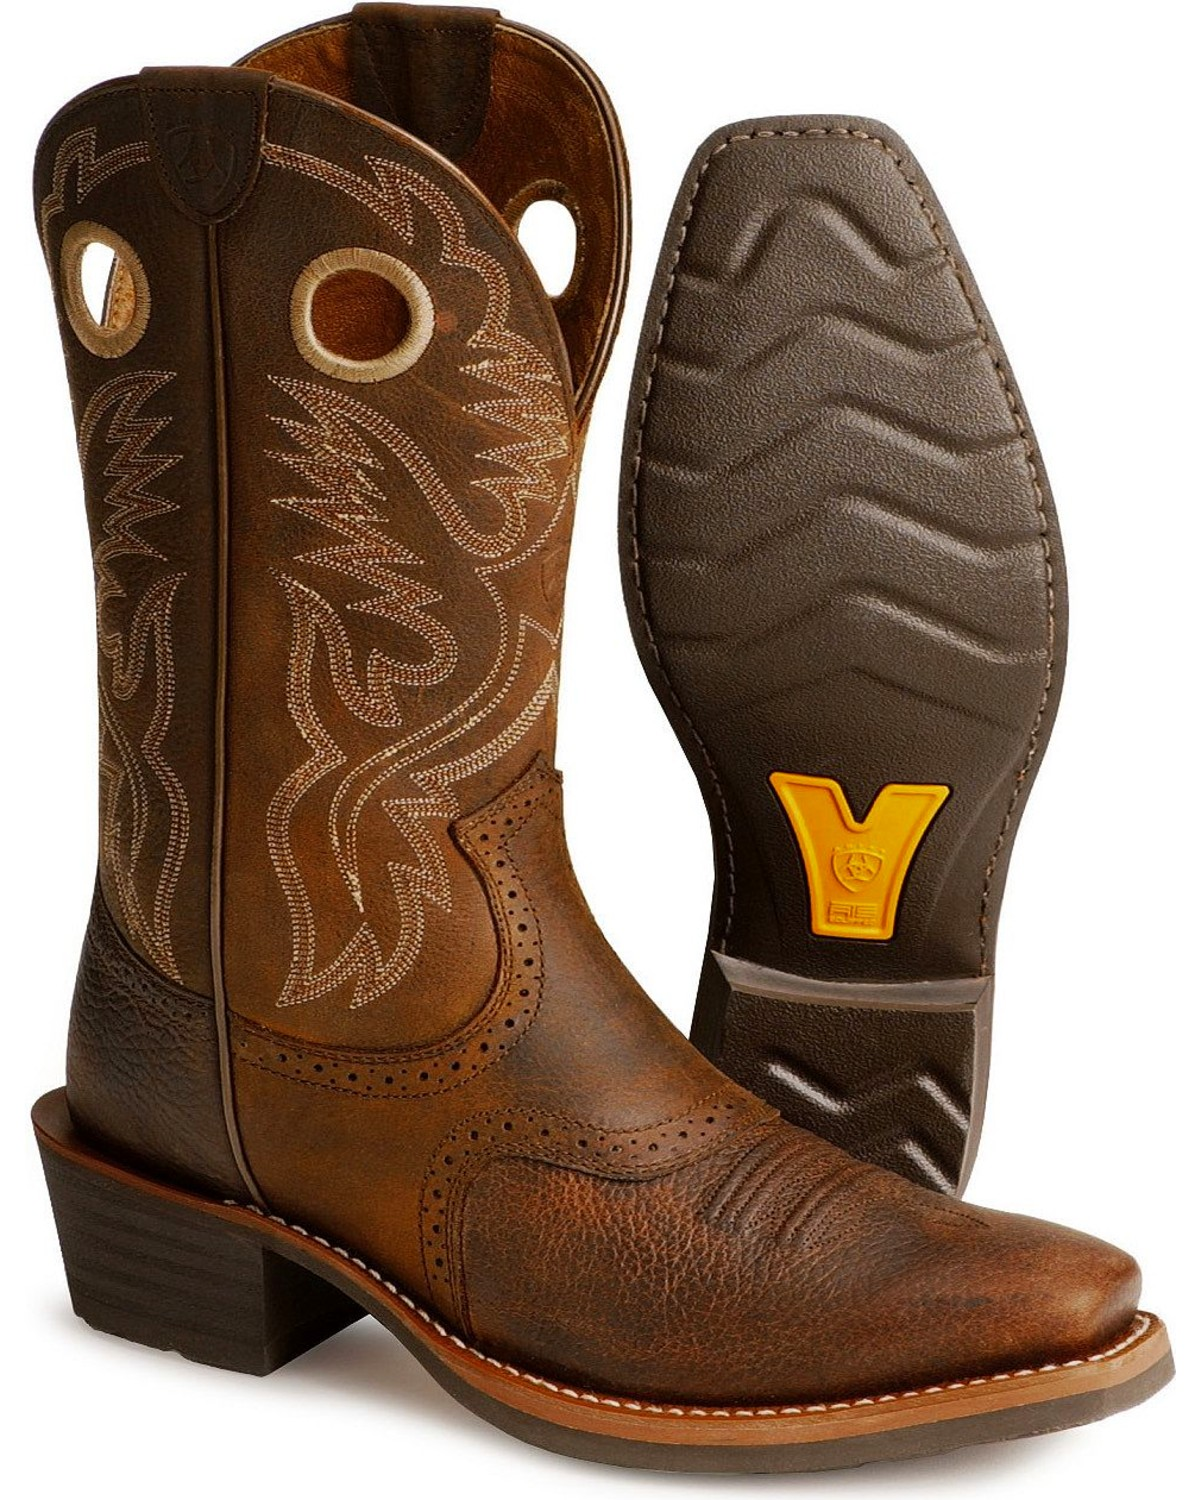 Ariat Heritage Rough Stock Cowboy Boots - Square Toe | Sheplers